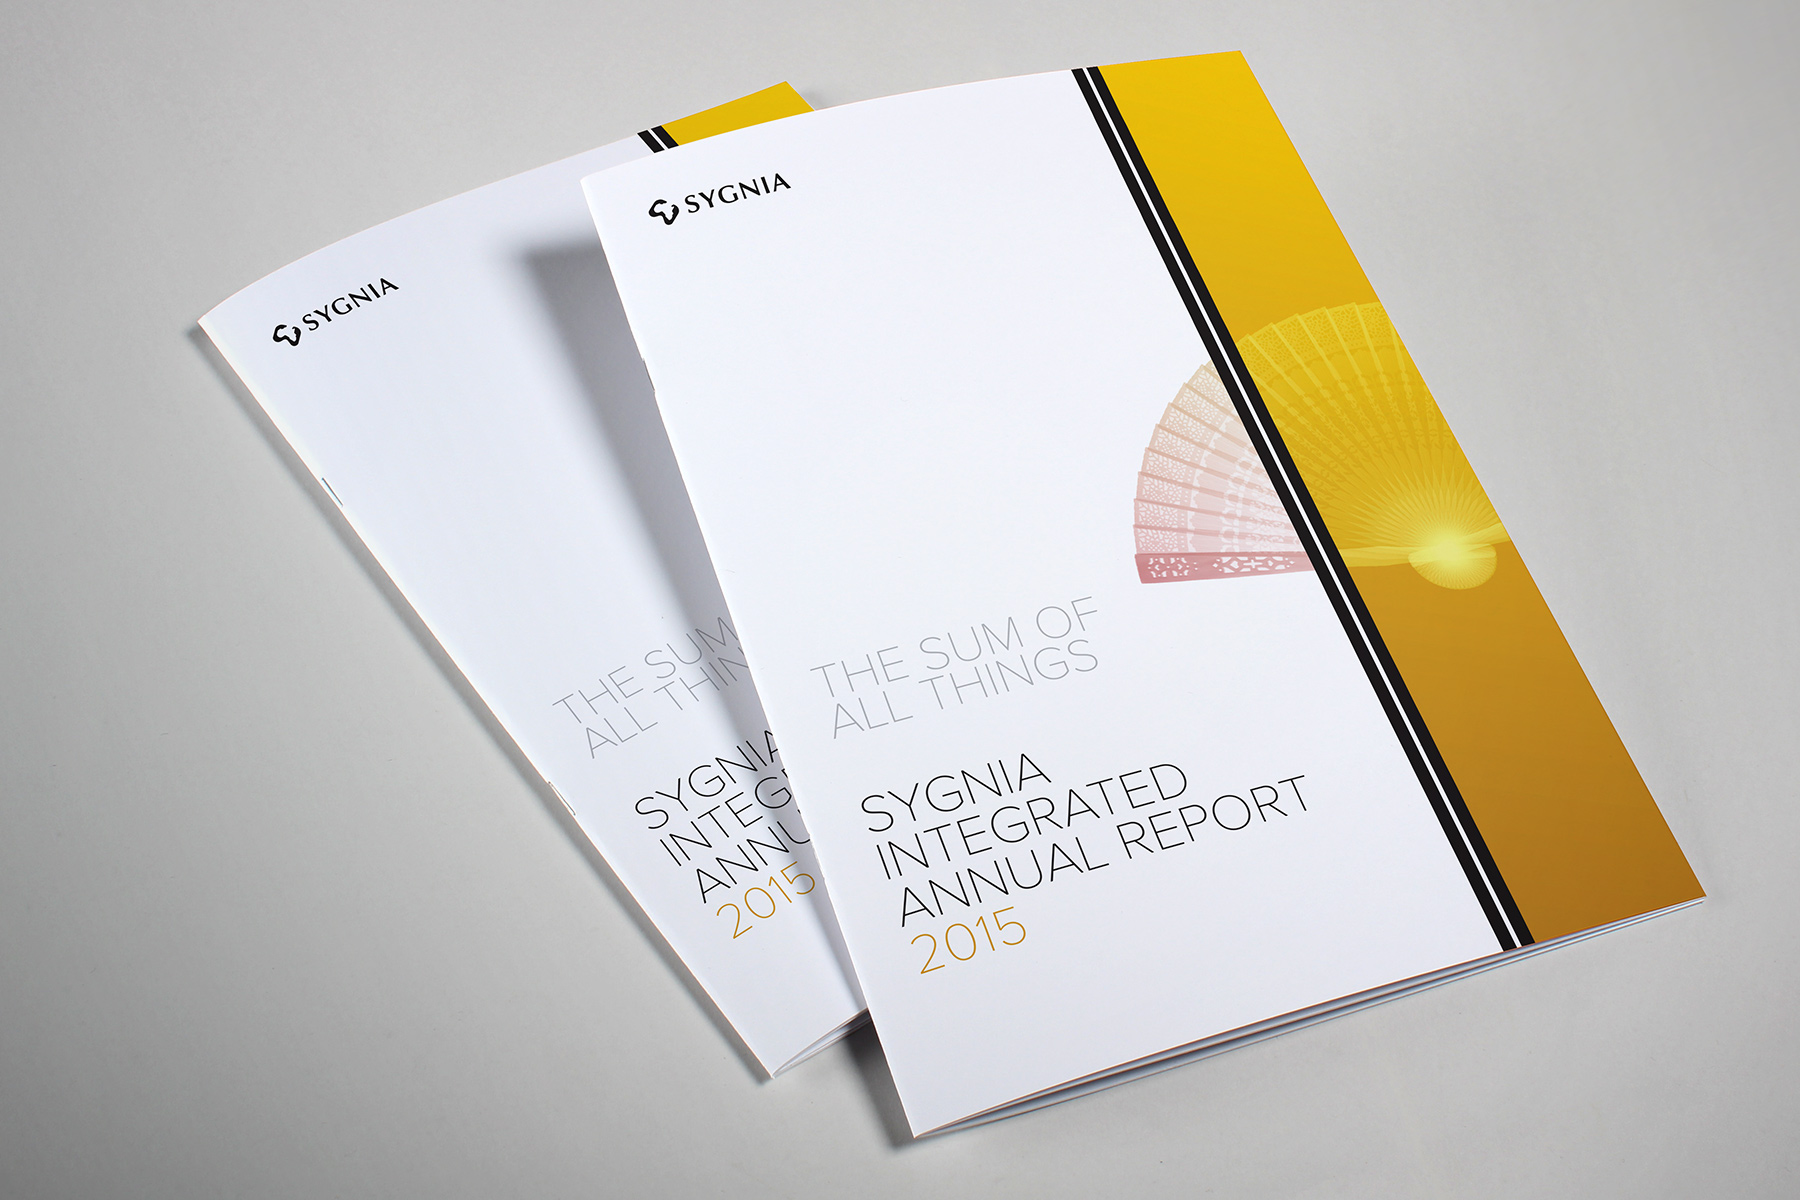 A set of publications guidelines has been created as guidance for creative teams working on the brand.